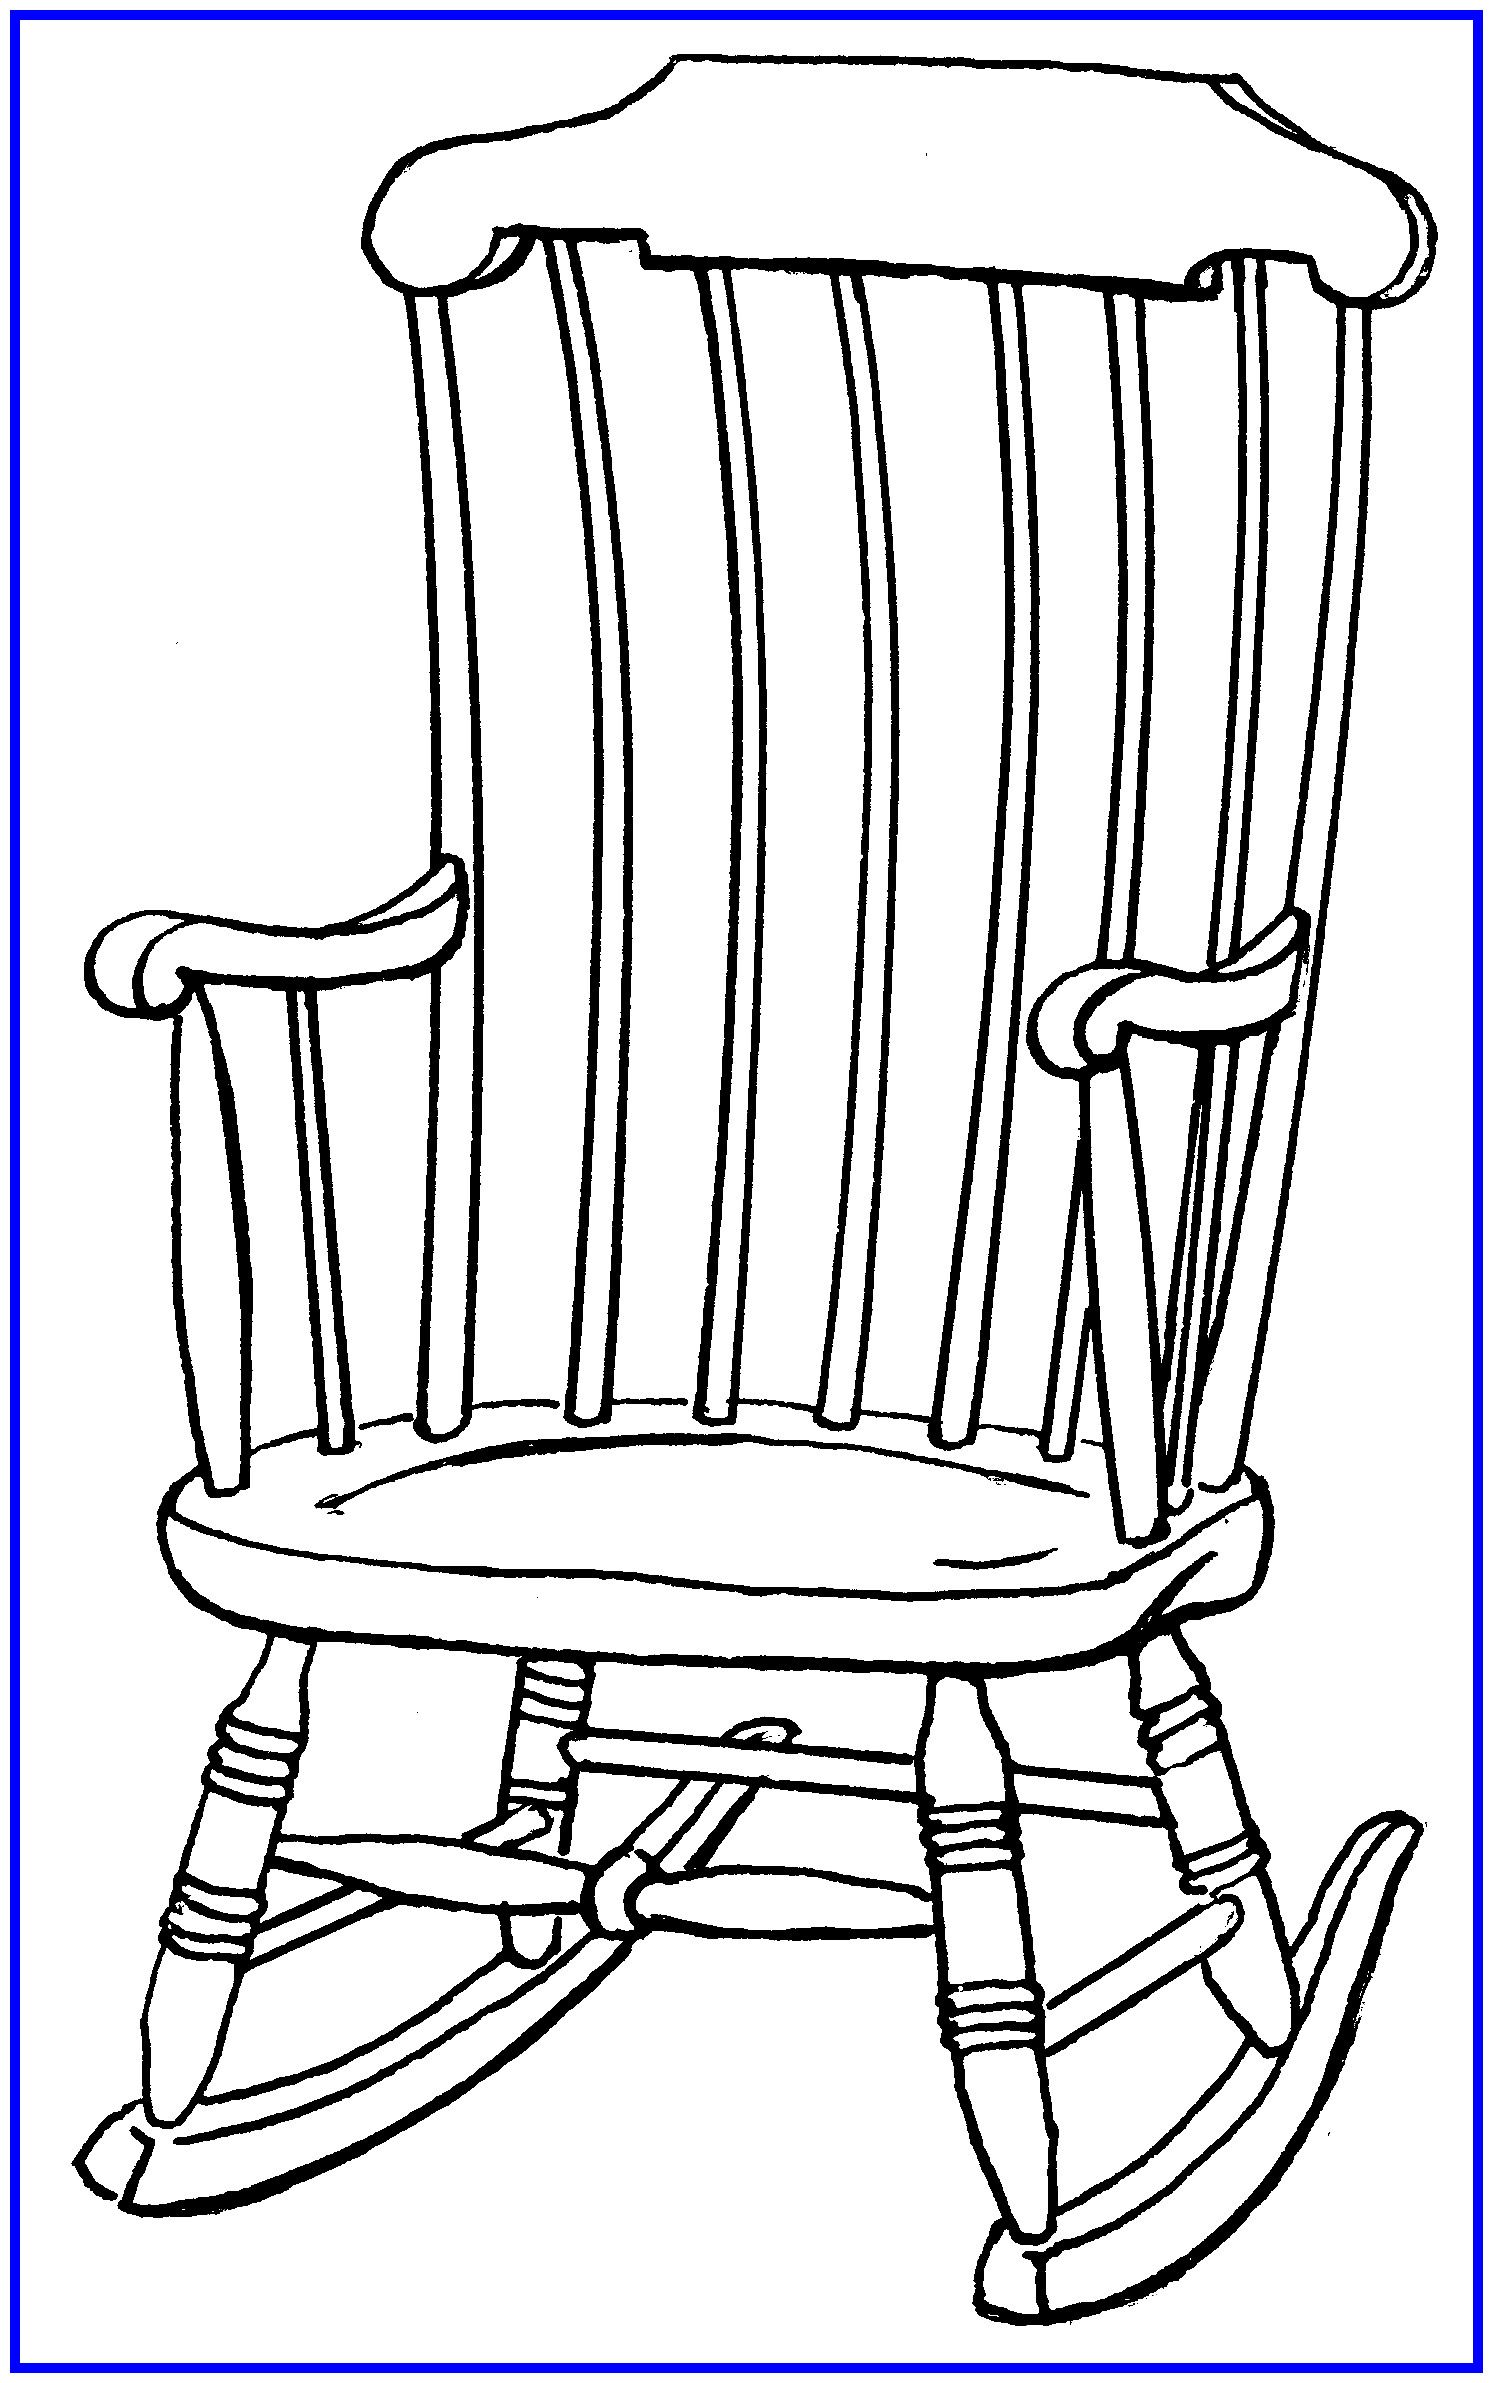 67 Reference Of Chair Black And White Picture In 2020 Chair Drawing Black And White Pictures White Picture